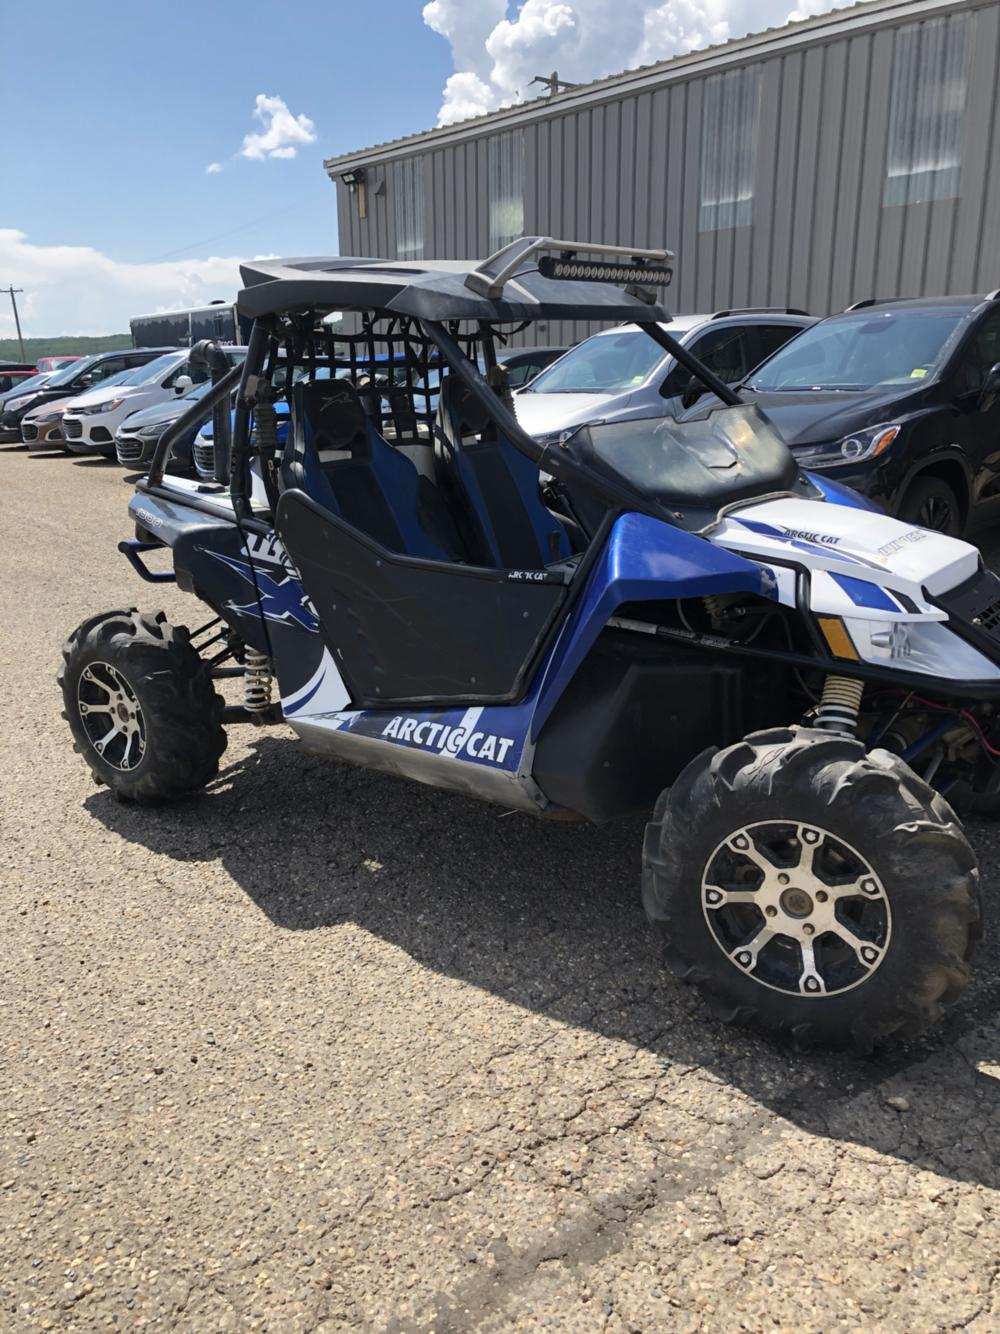 Inventory Mighty Peace PowerSports & RV Peace River, AB (780